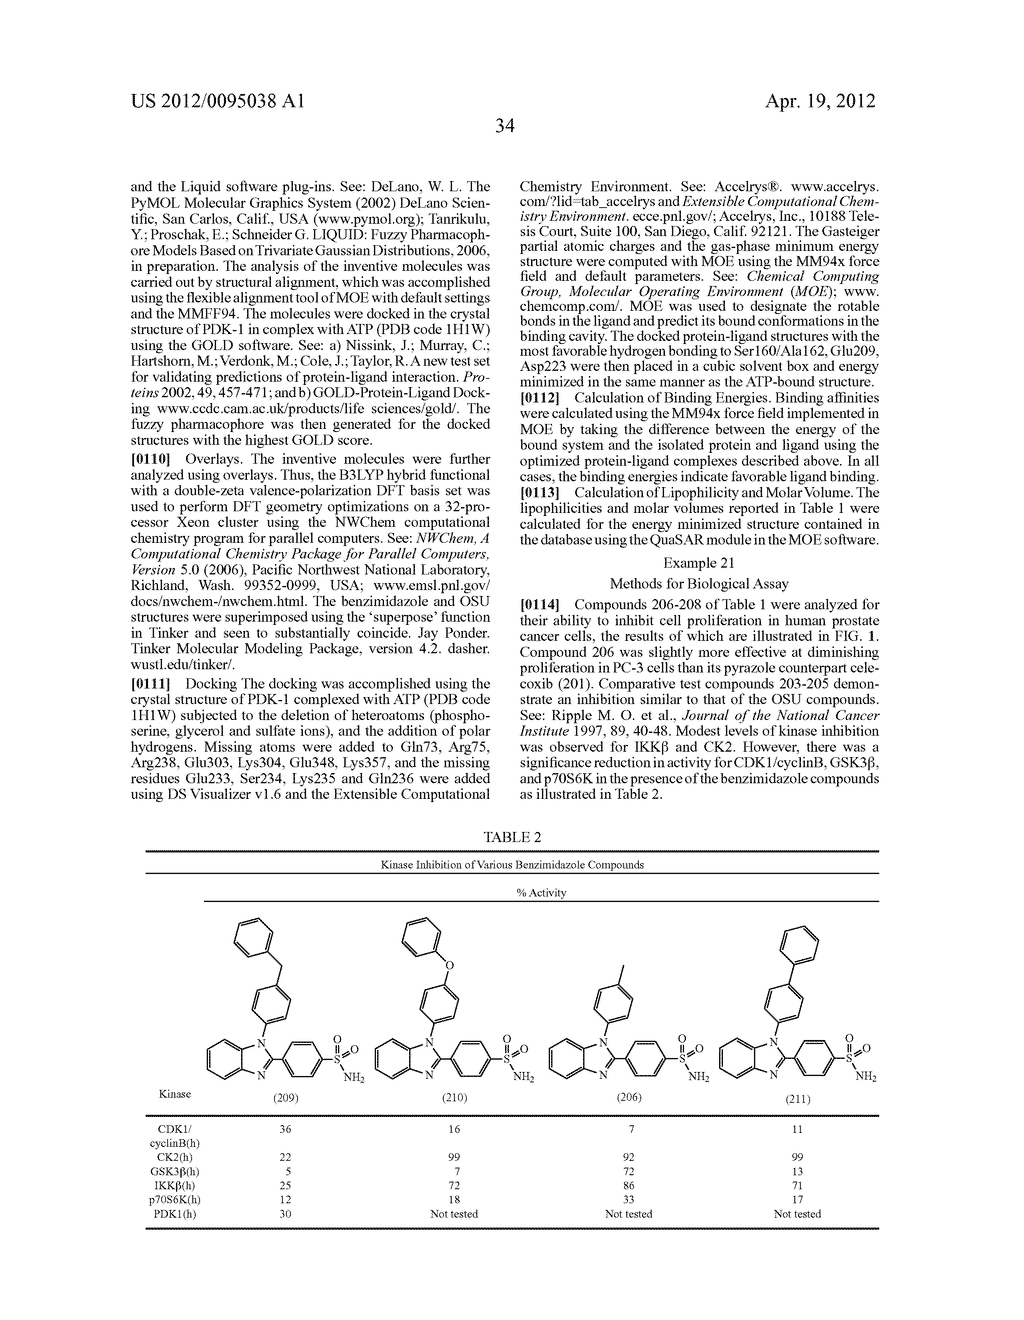 SYNTHESIS AND ANTI-PROLIFERATIVE EFFECT OF BENZIMIDAZOLE DERIVATIVES - diagram, schematic, and image 36